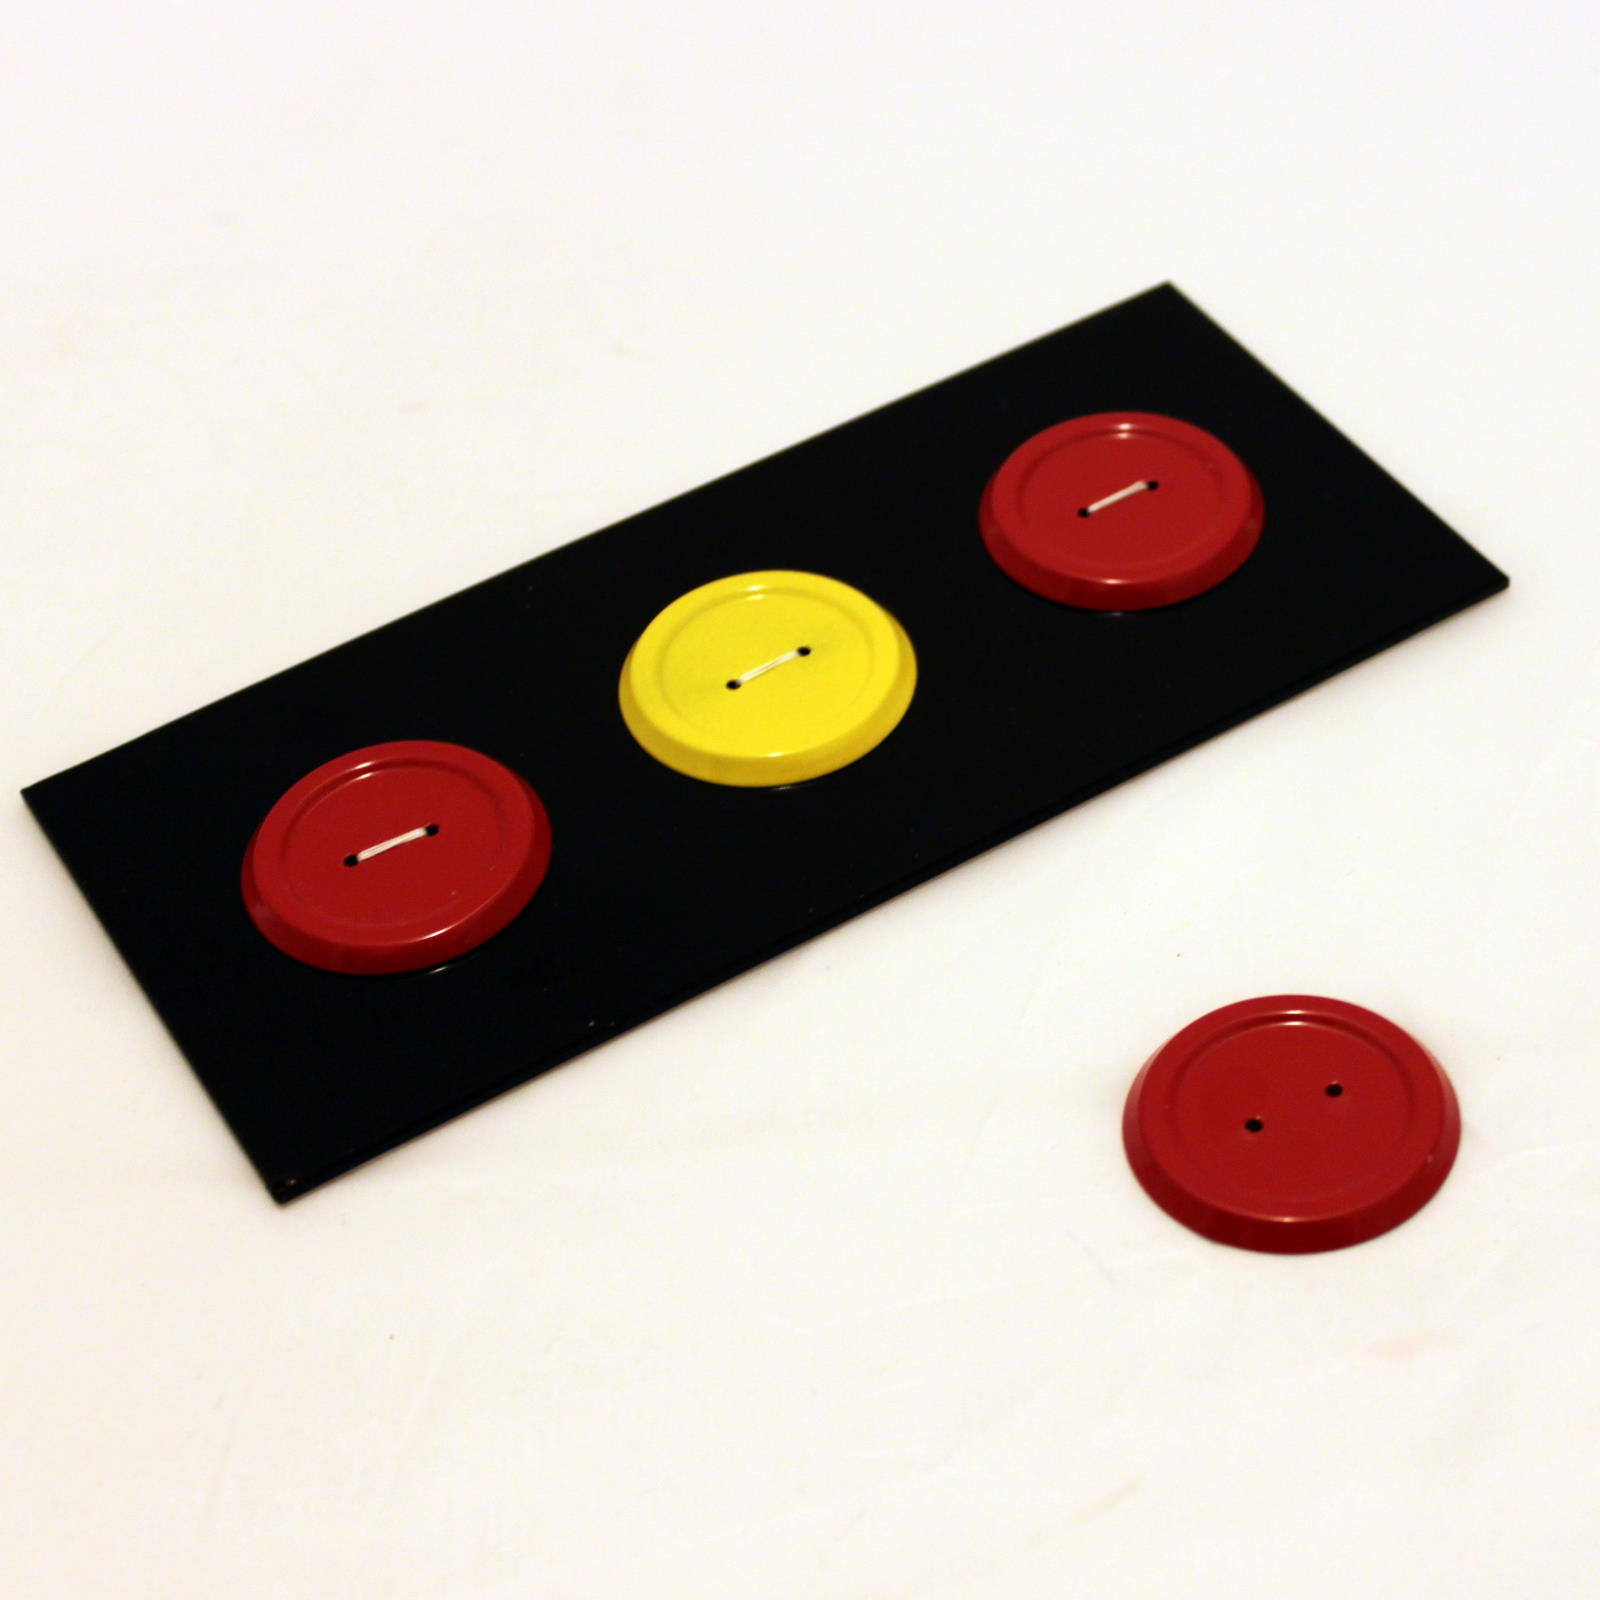 Buttons Up by Wolfgang Wollet